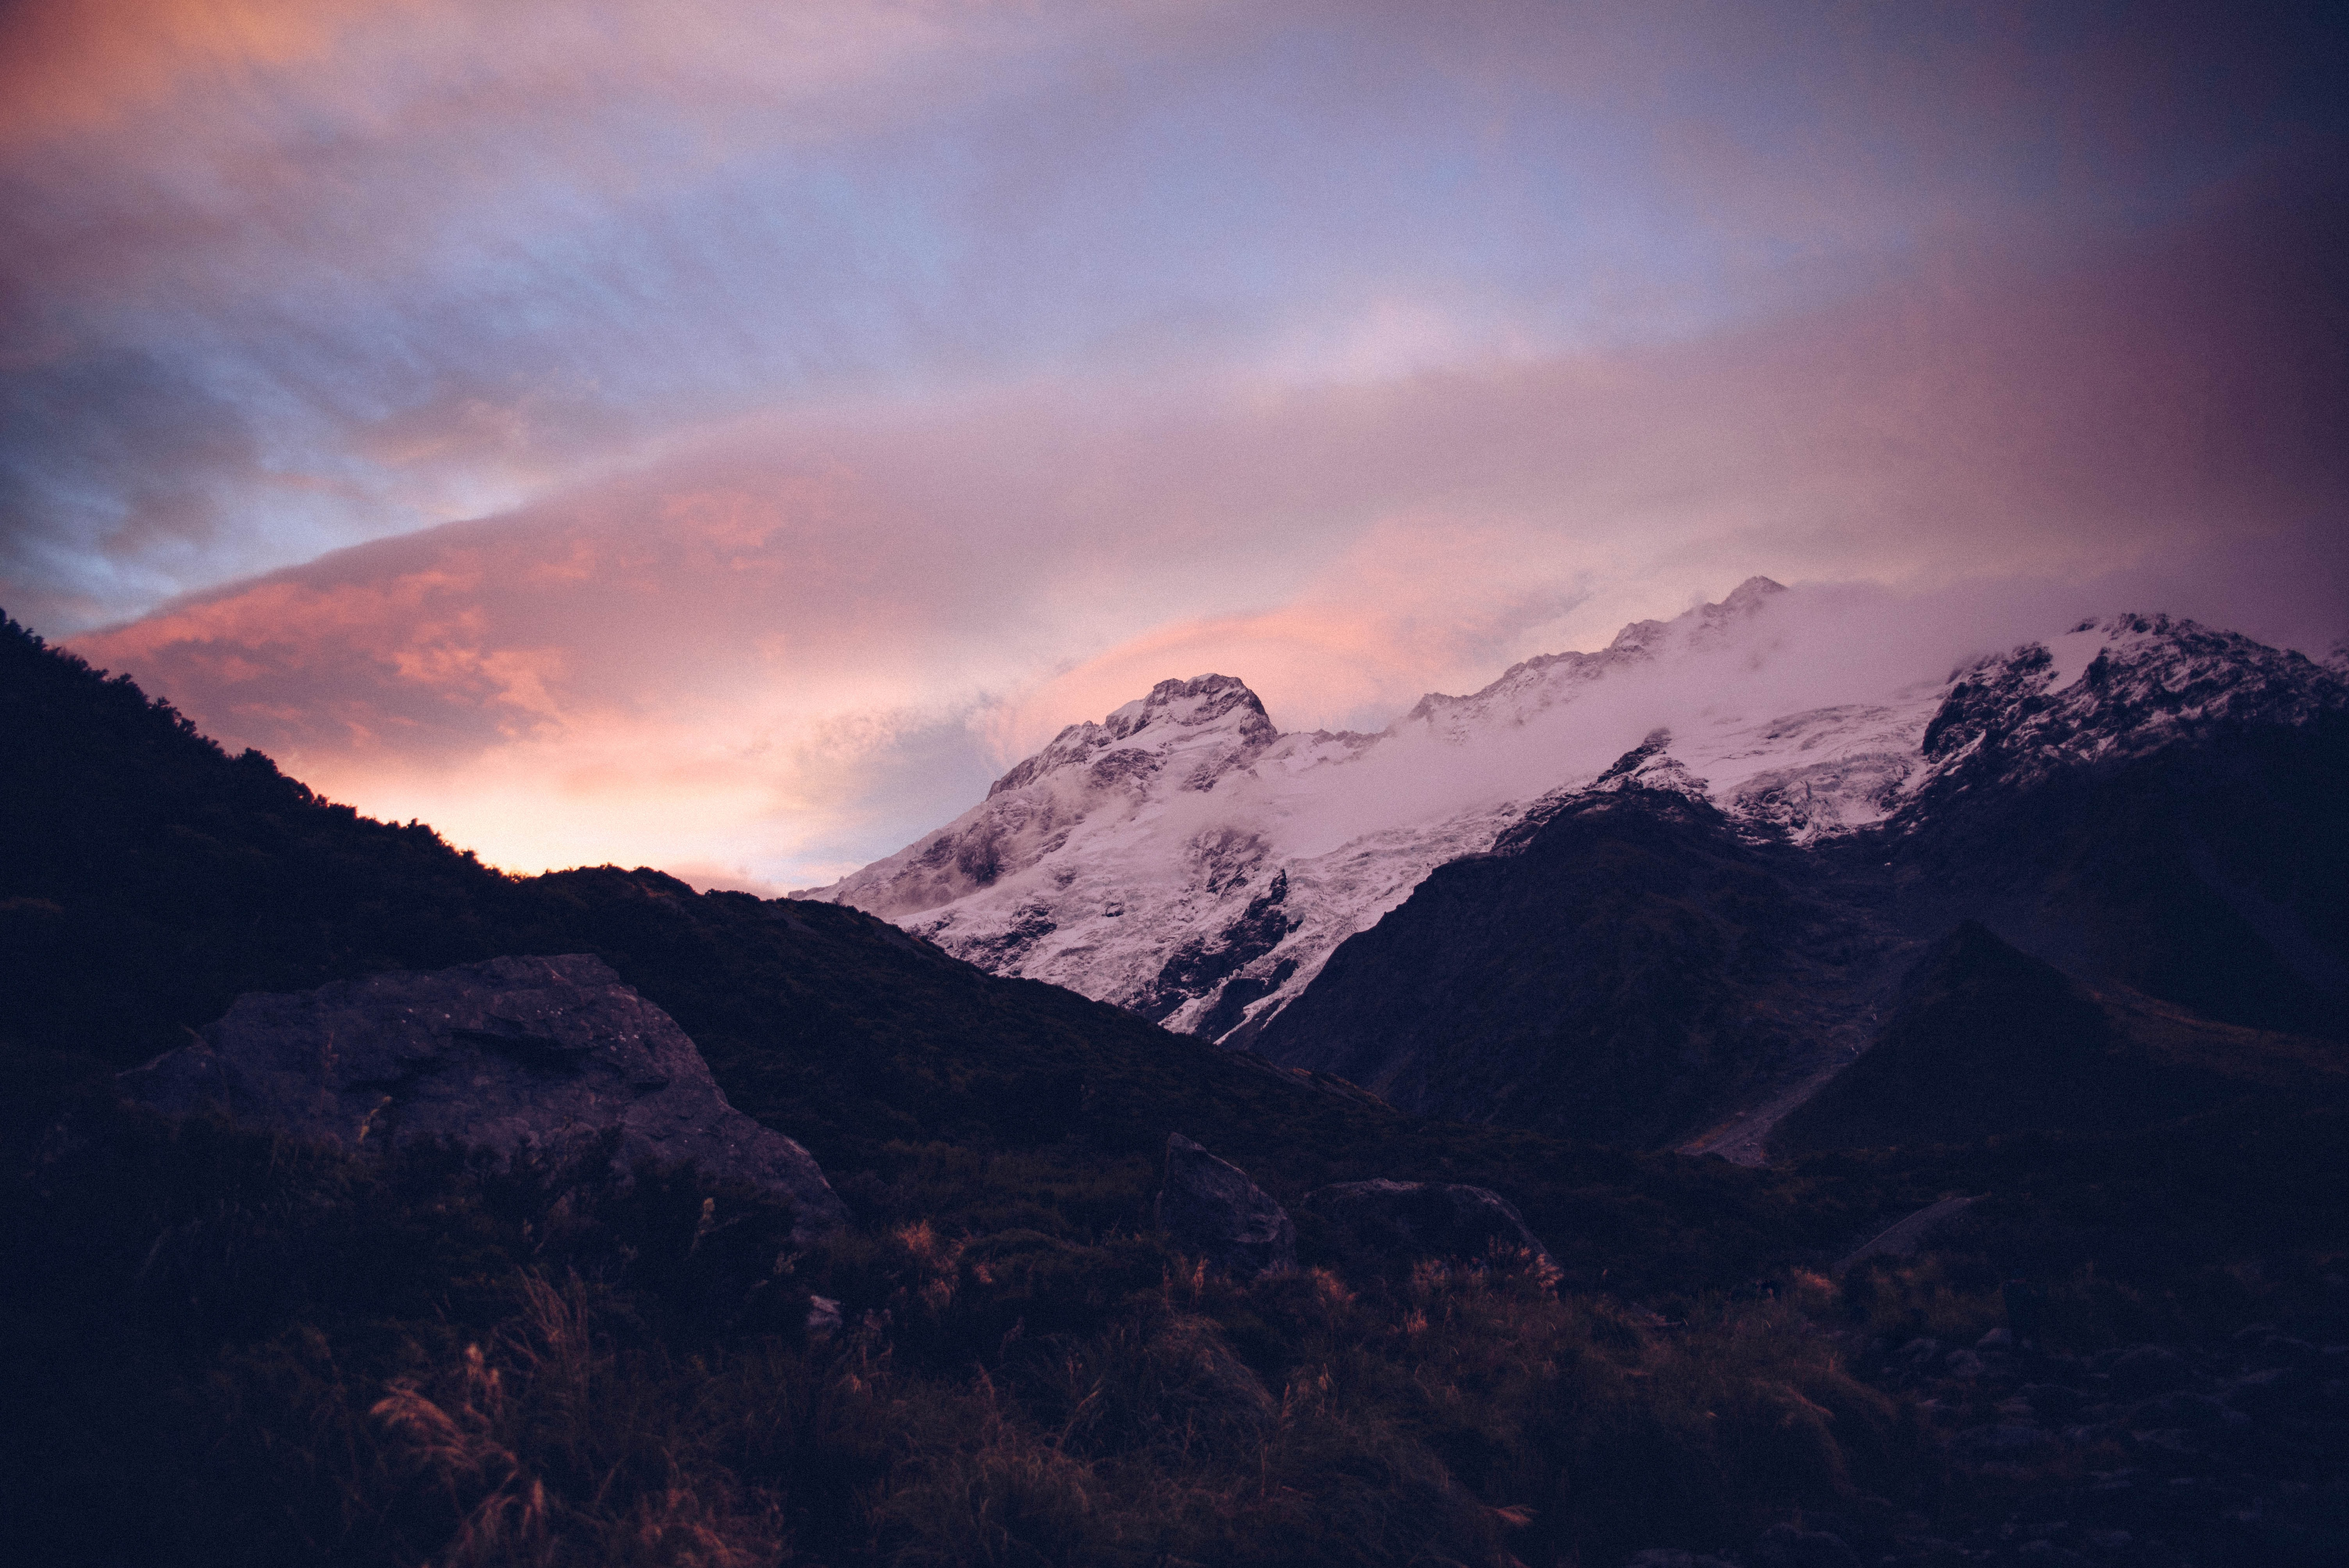 A pink-hued shot of sunset over snowy mountains